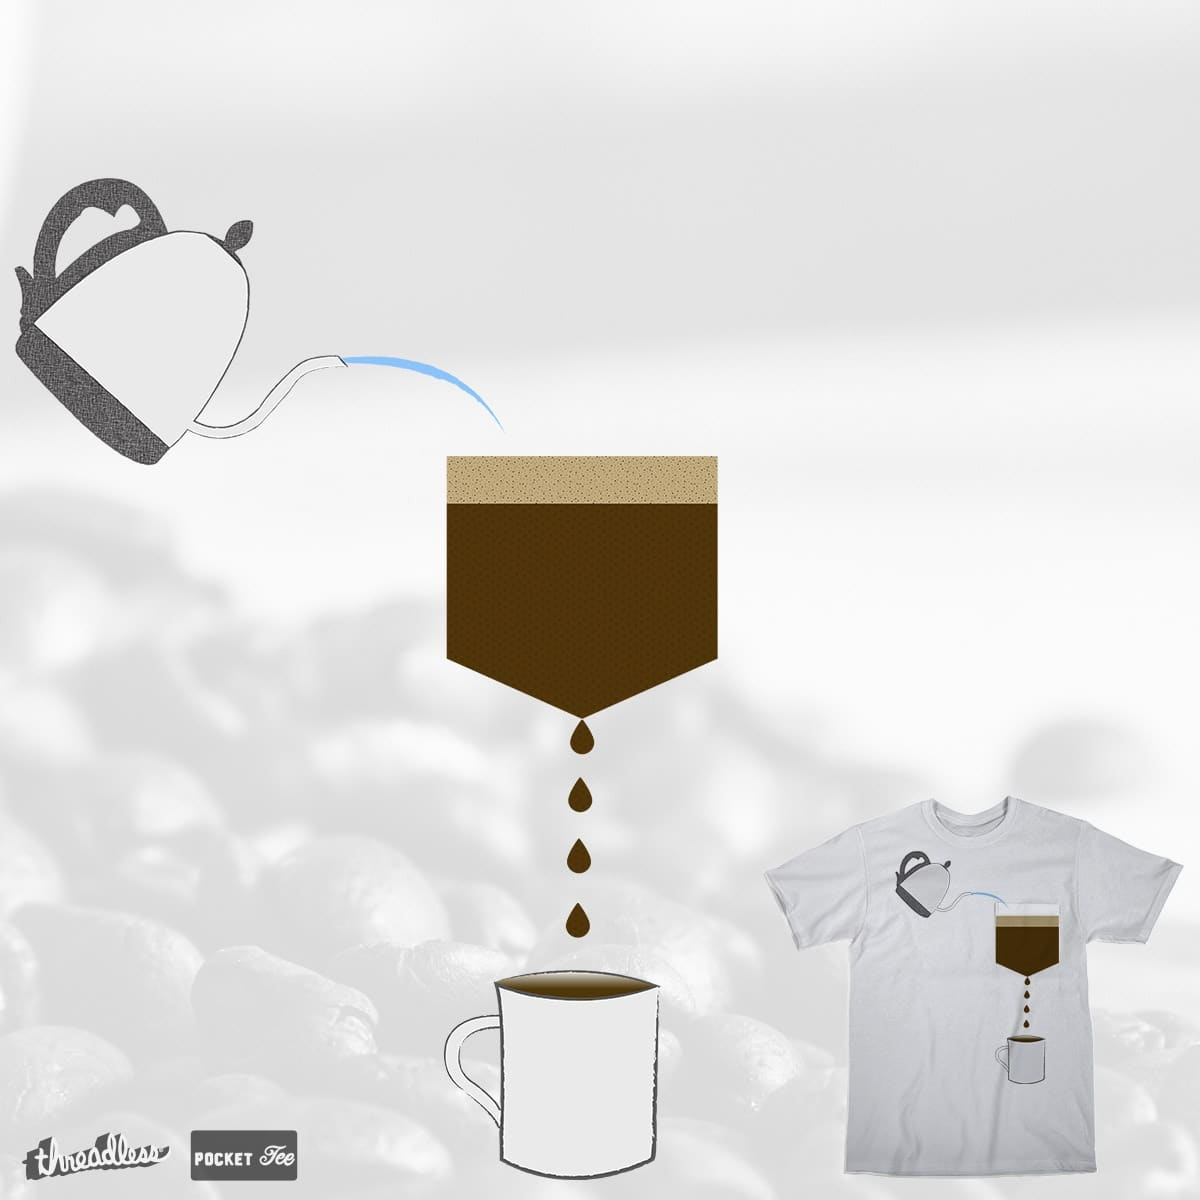 Cotton Filtered by dramaofseasons on Threadless